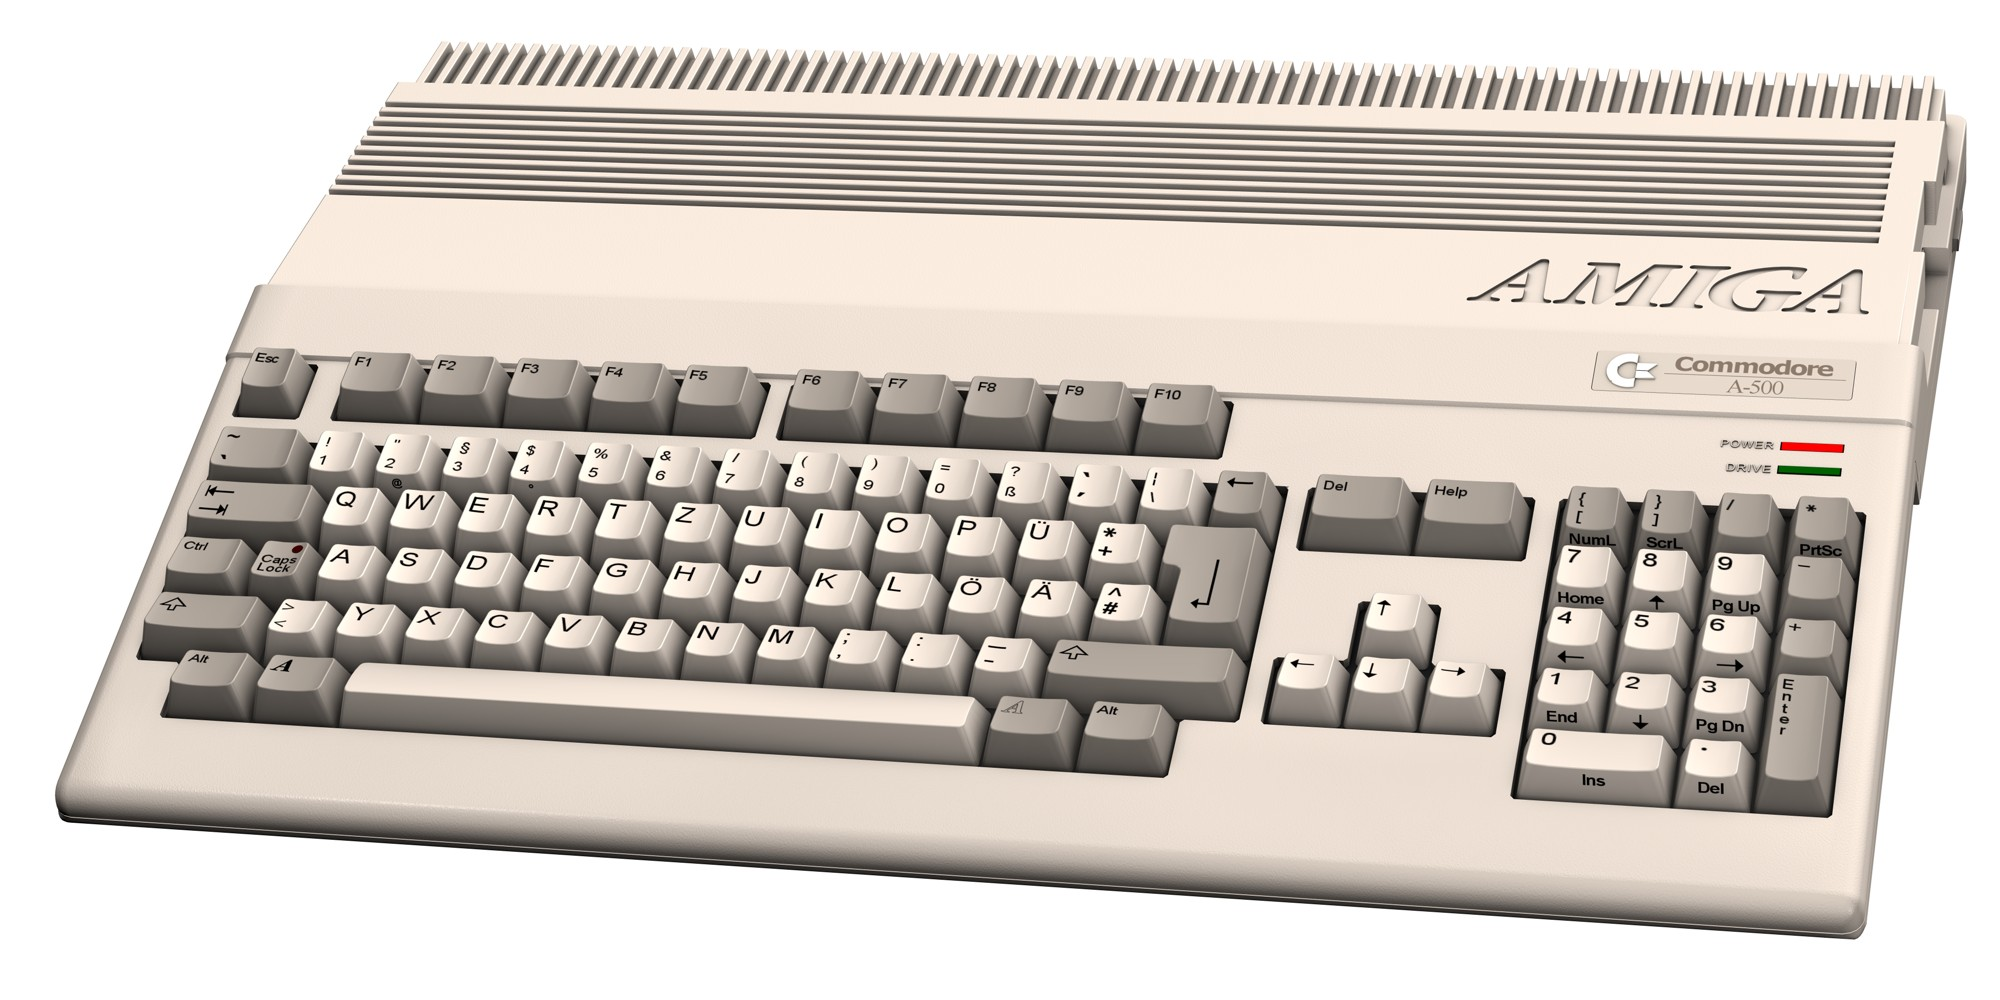 What does a Spanish computer keyboard look like